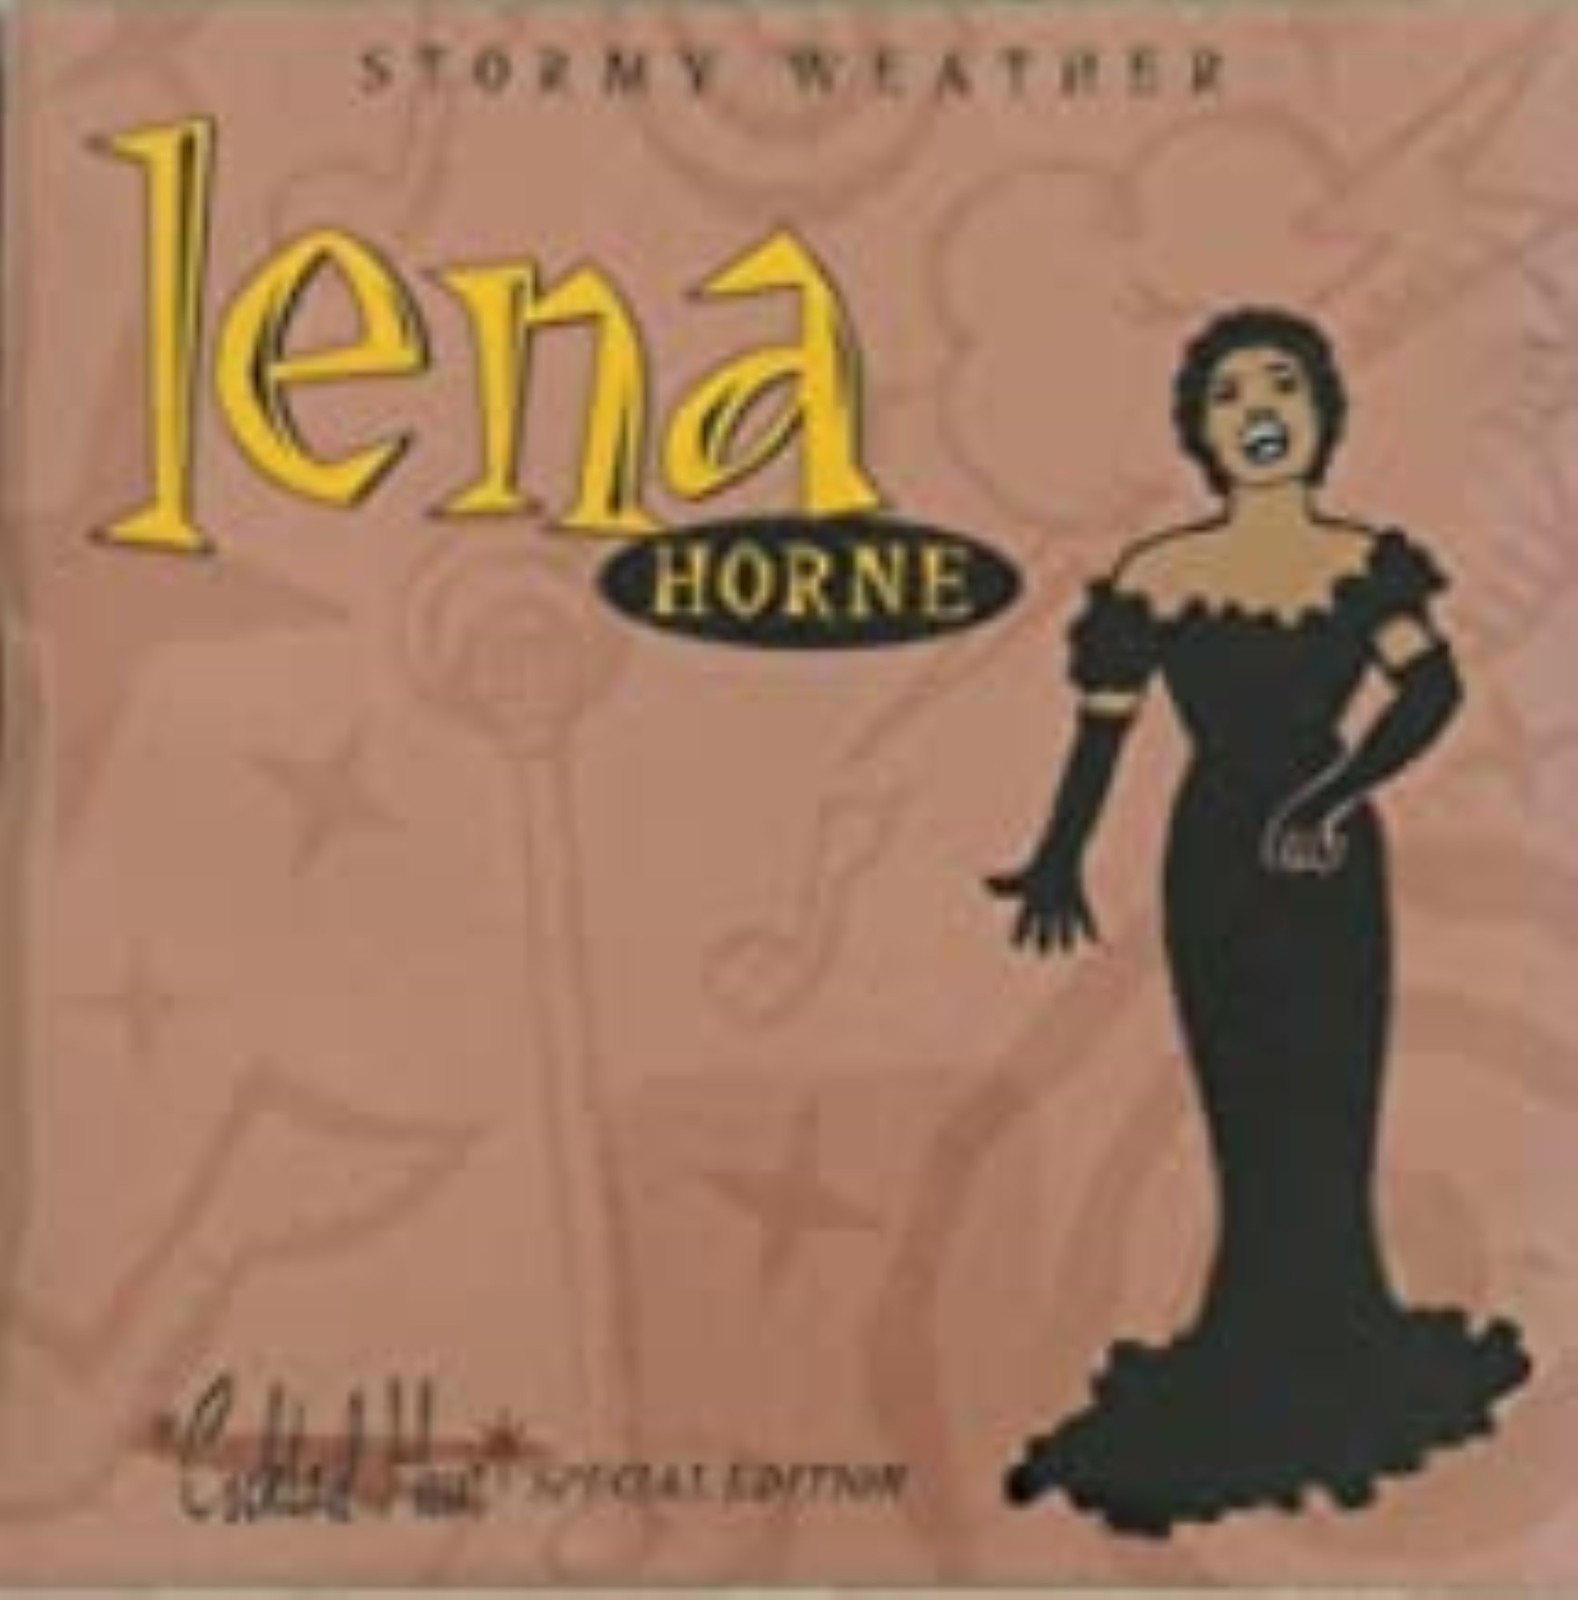 Stormy Weather by Lena Horne Cd